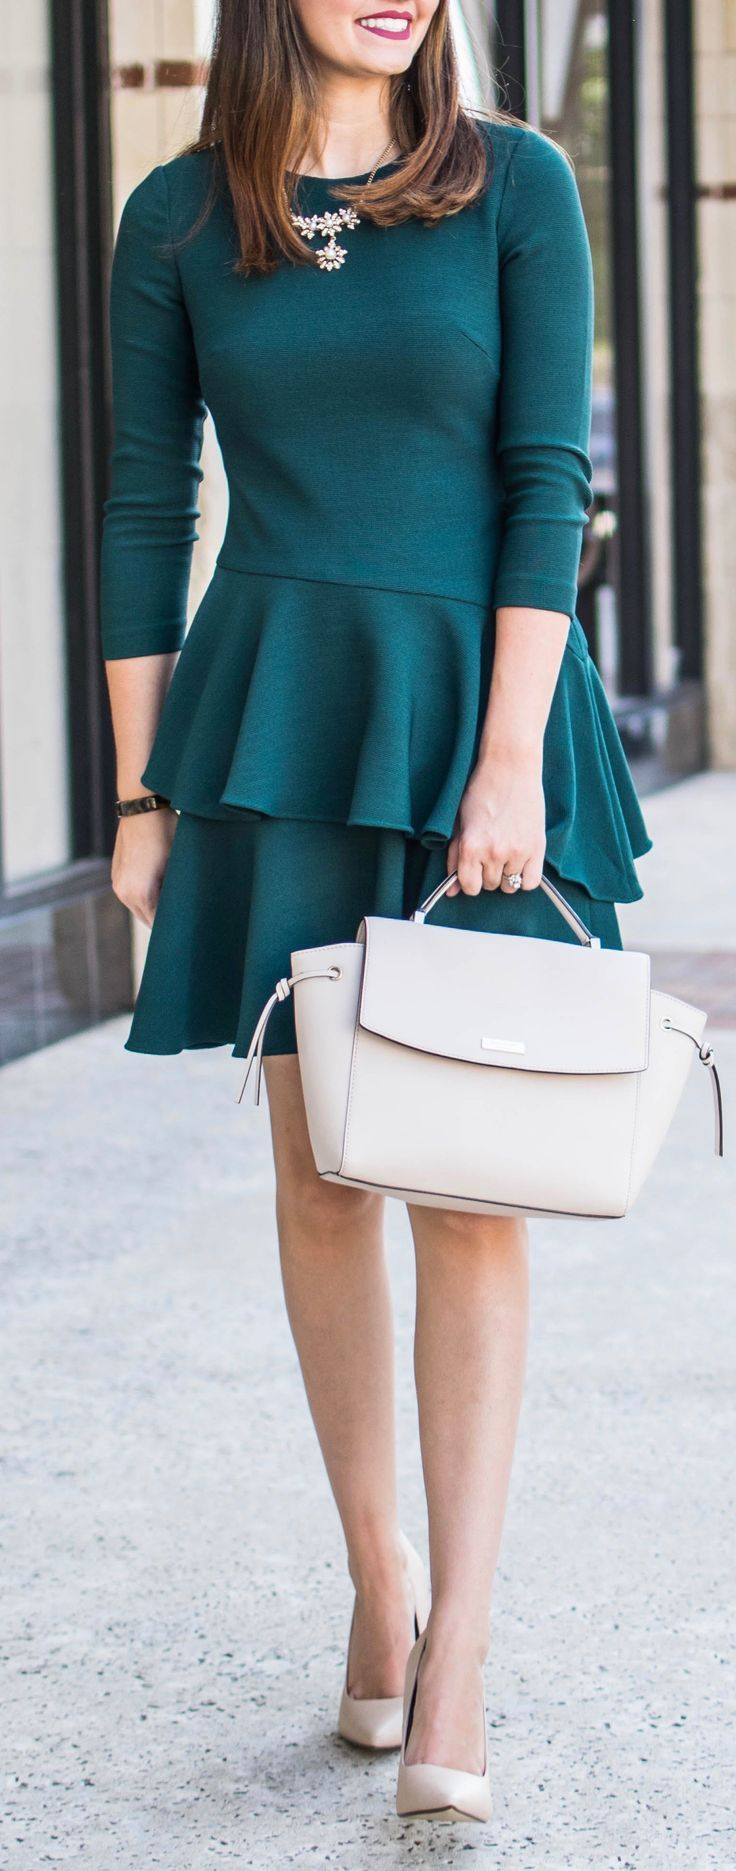 Eliza J Dress #greendress #falldress #ruffledress #fall #outfit